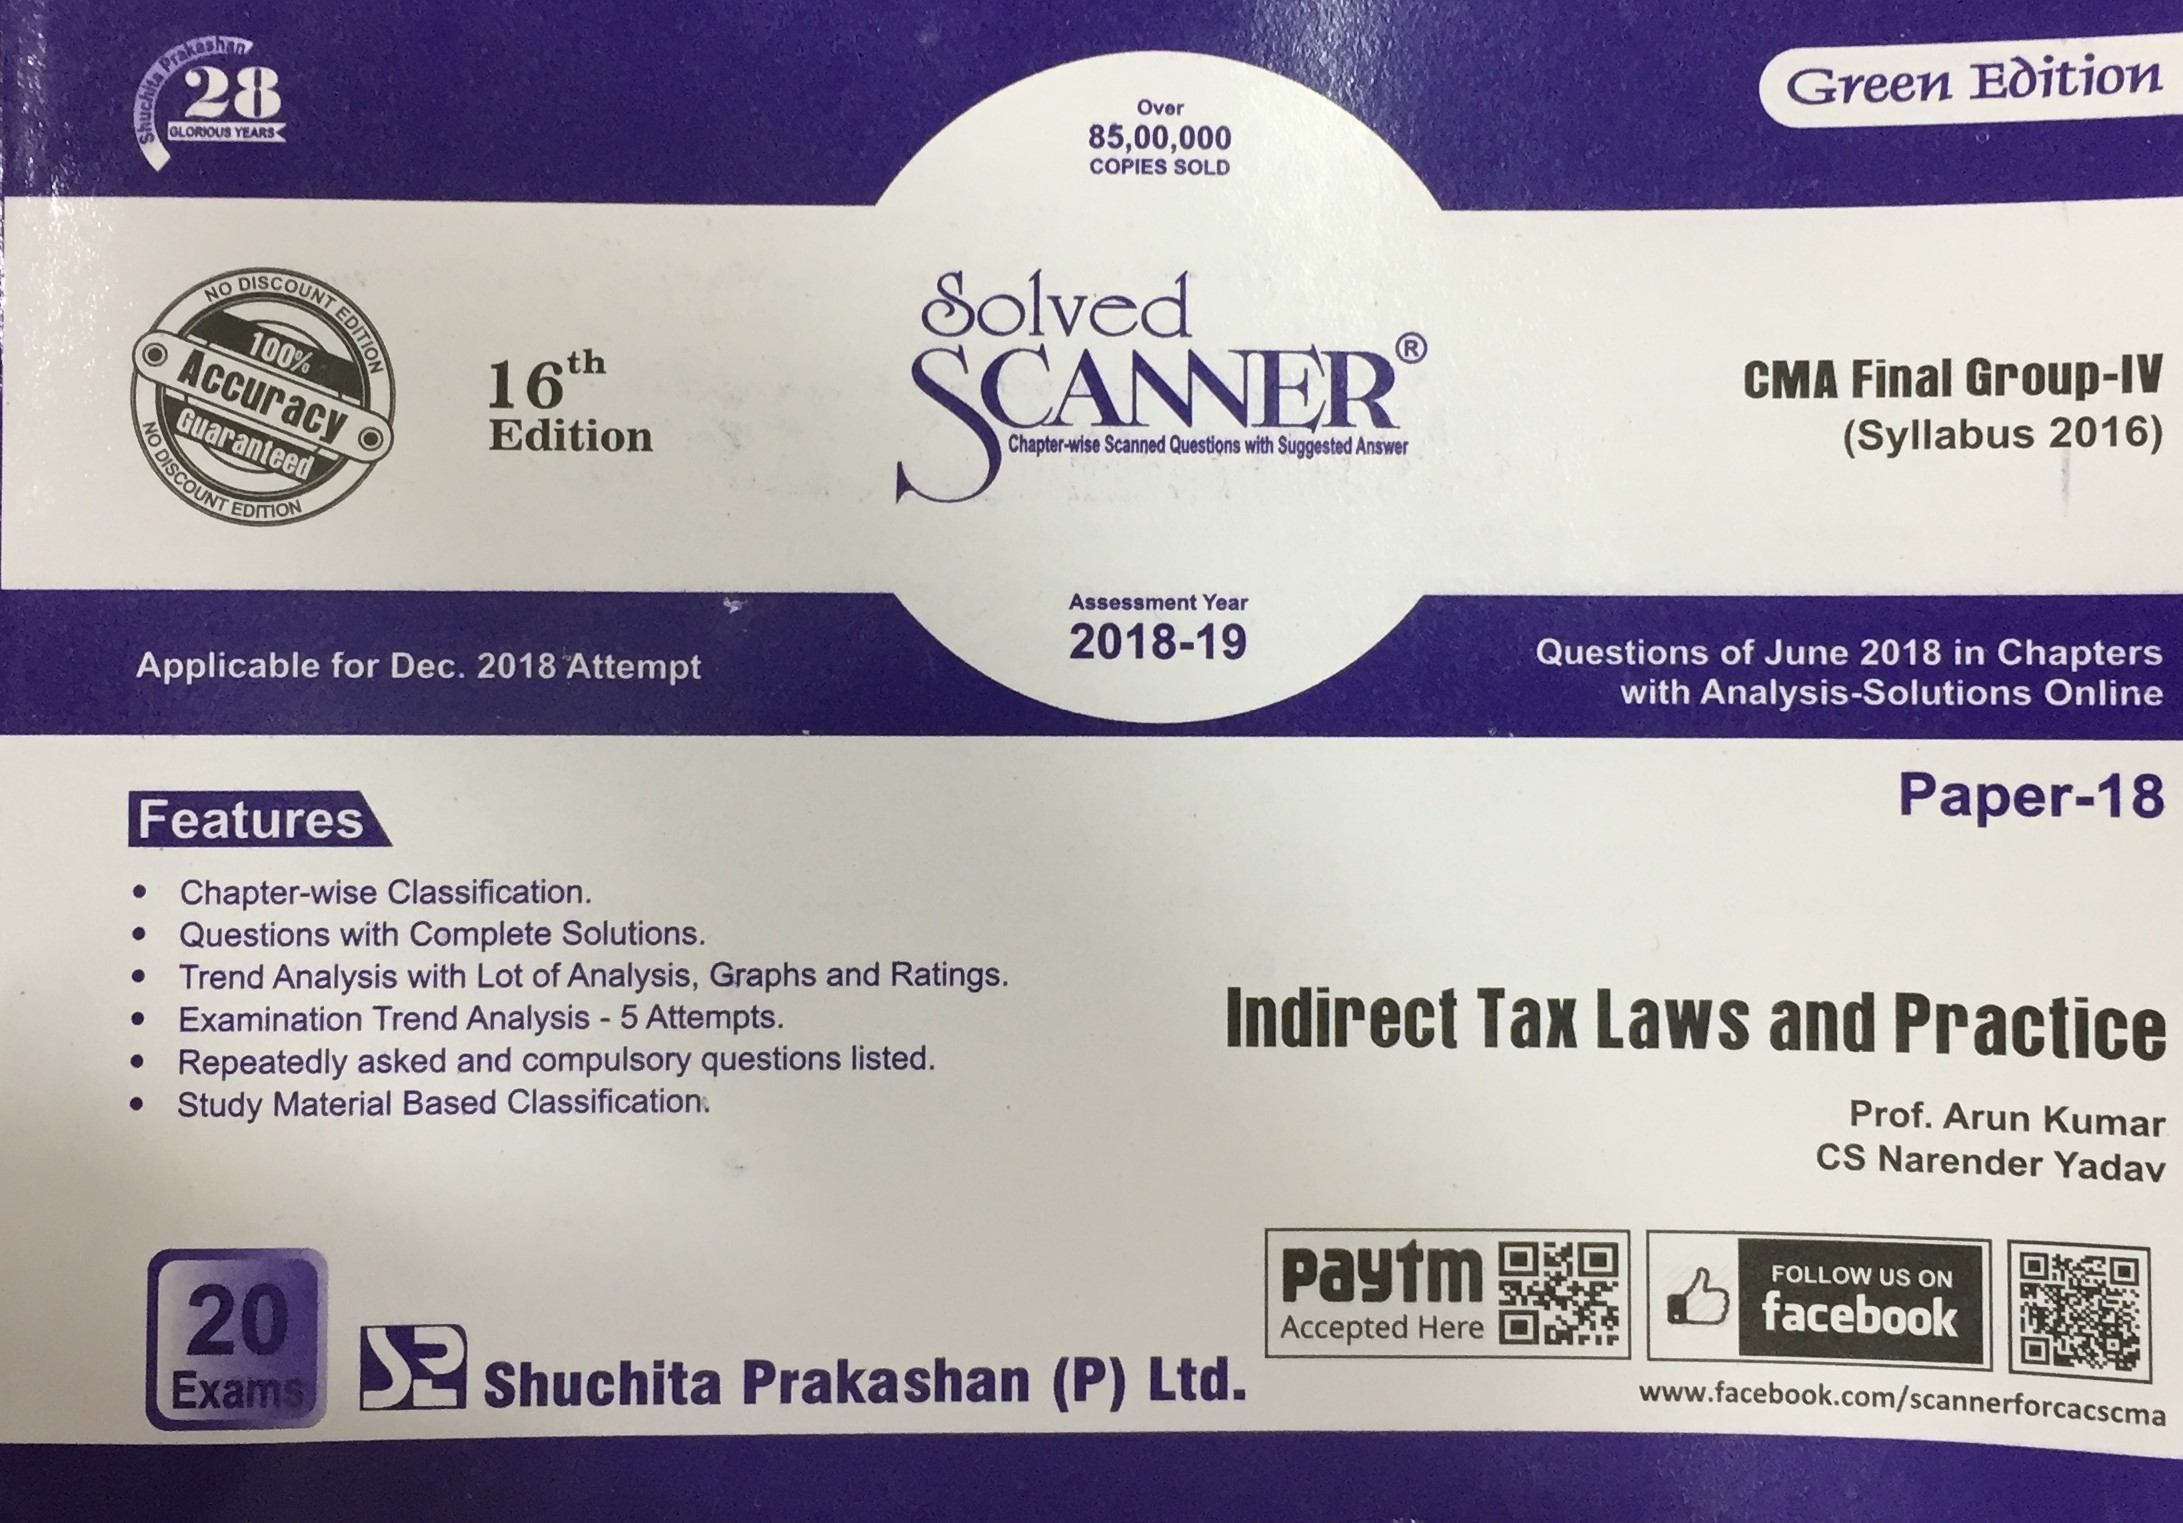 Shuchita Solved Scanner Indirect Tax Laws and Practice for CMA Final Group IV Paper 18 New Syllabus for Dec 2018 by Prof. Arun Kumar and CA Raj Agarwal (Shuchita Prakashan) Edition 16th 2018